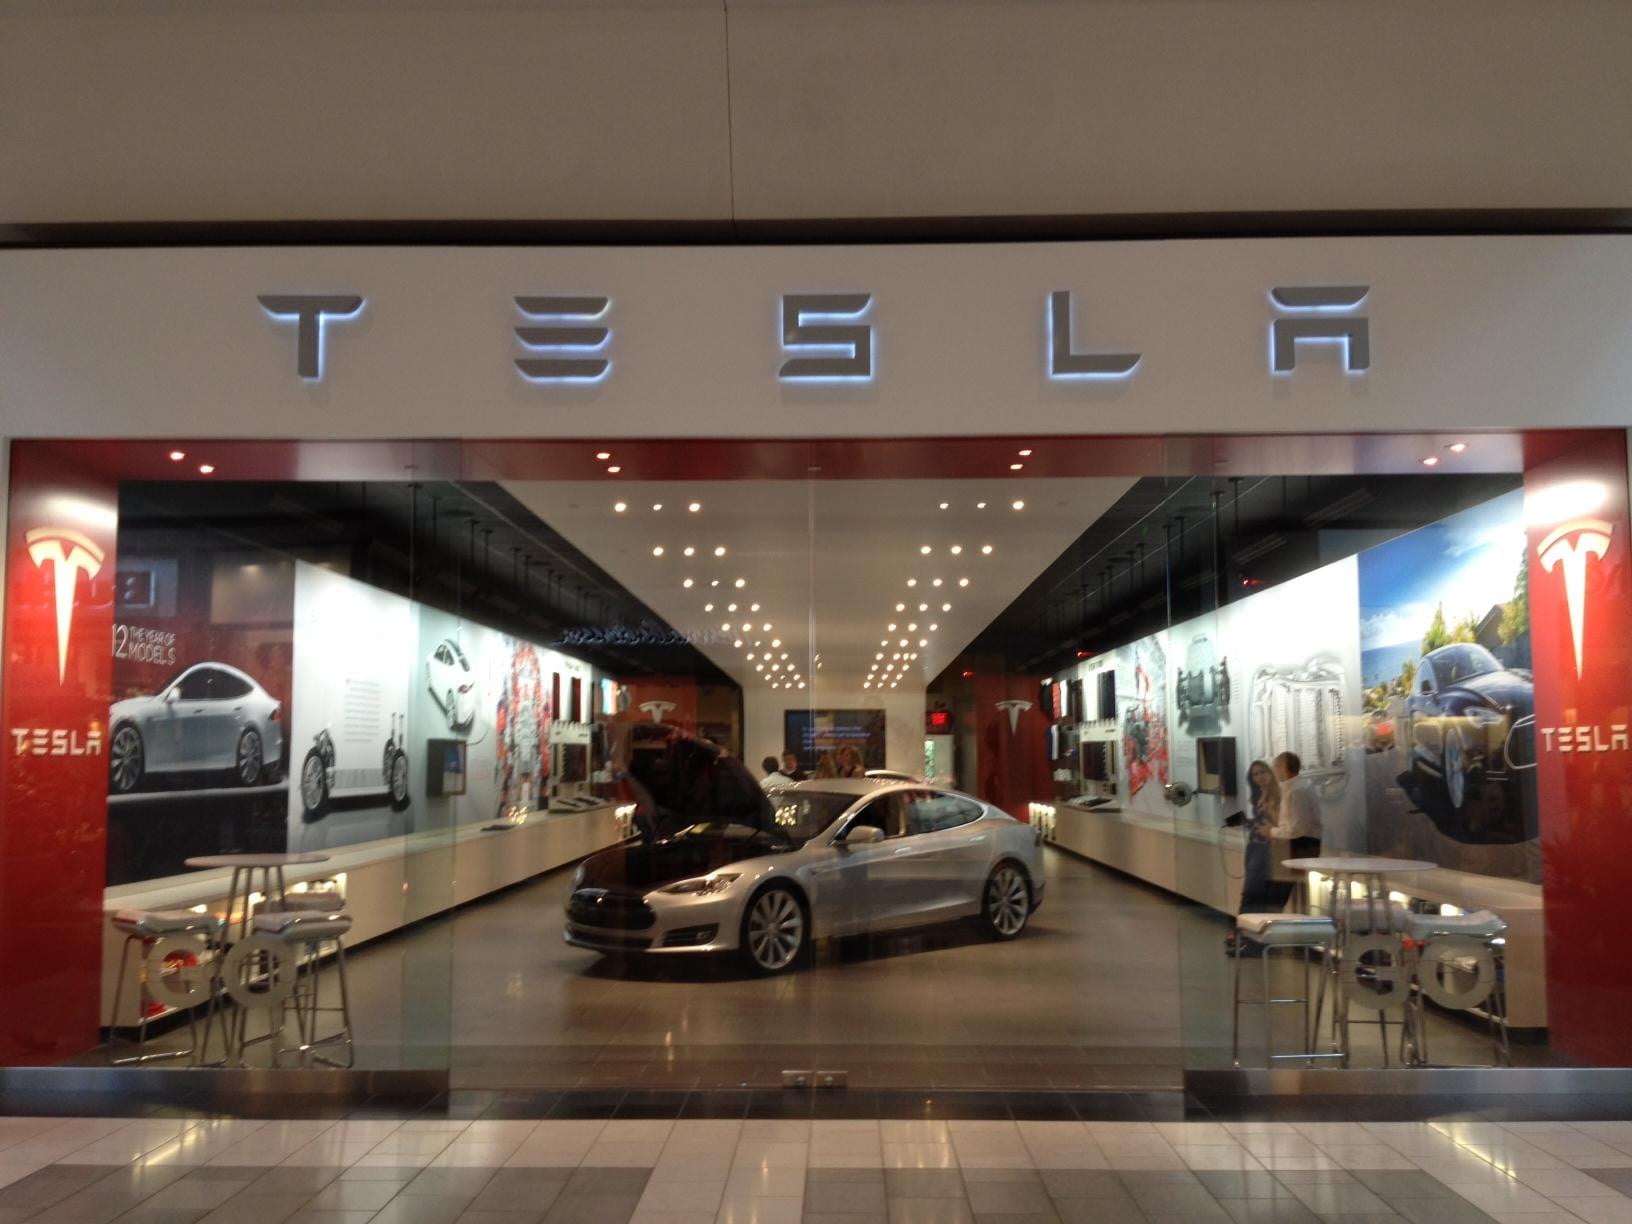 Tesla S Company Owned Stores Create Controversy Digital